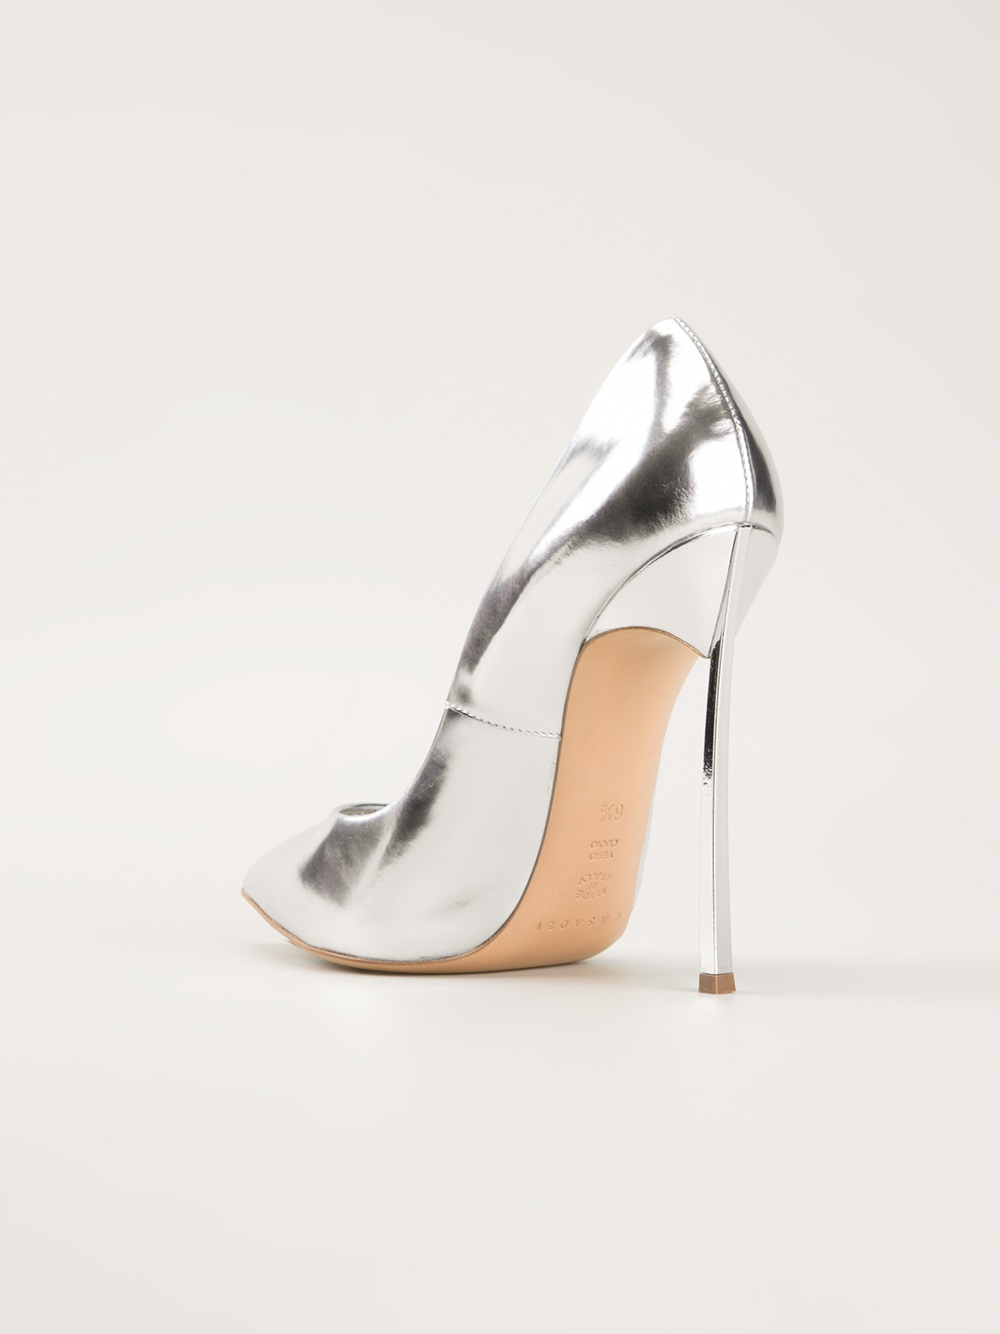 Lyst Casadei High Heel Pumps In Metallic